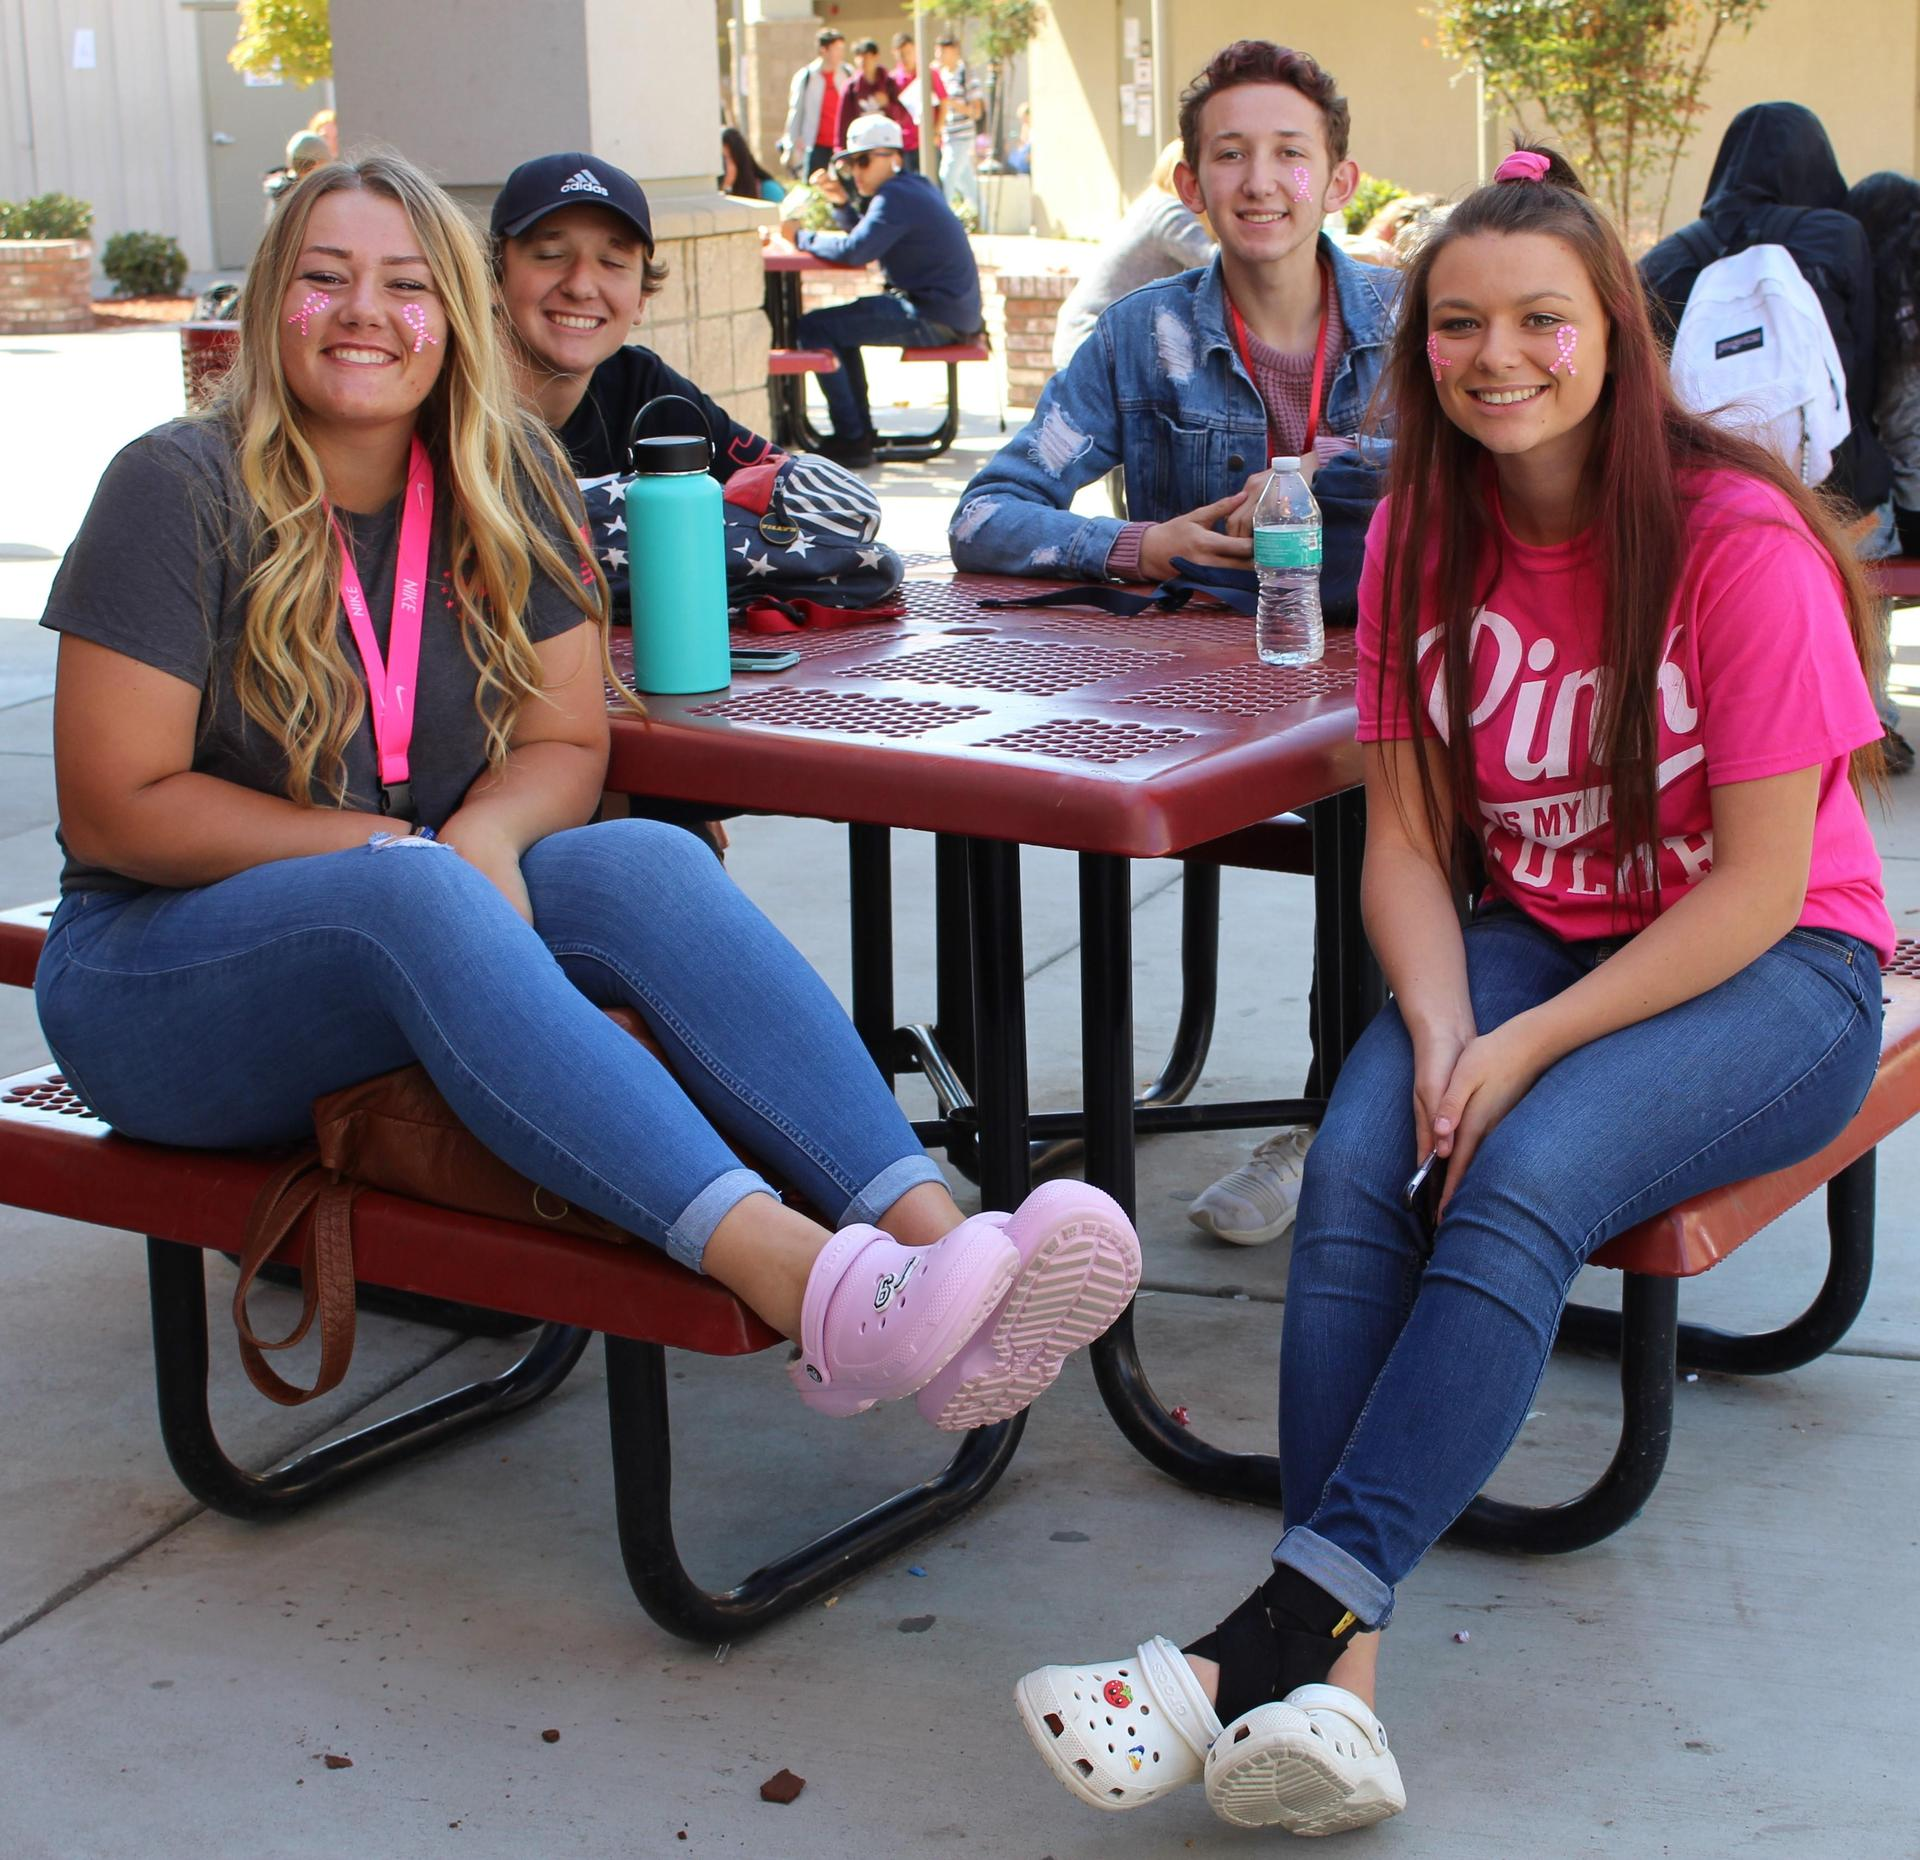 Students and staff wearing pink clothing to support awareness of Breast Cancer.